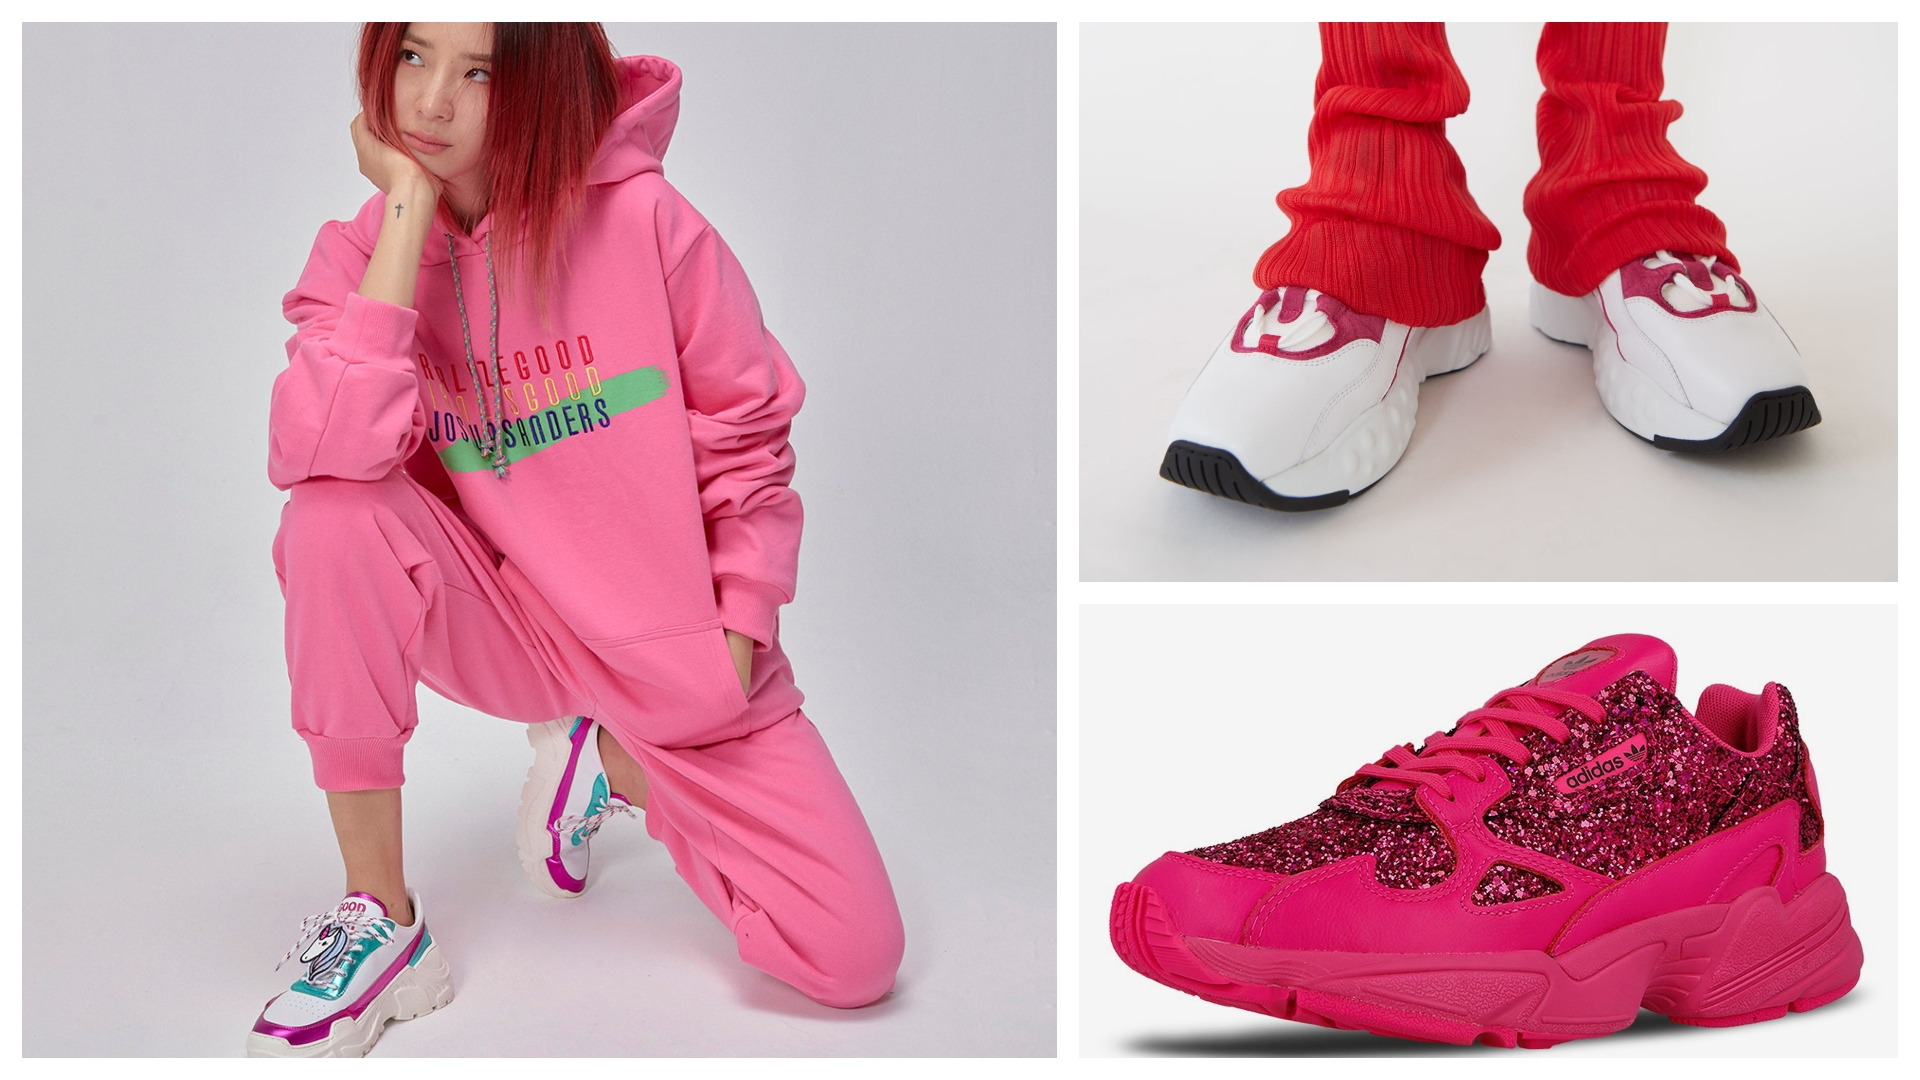 TOP pair of beautiful lotus-pink sneakers without cheesy